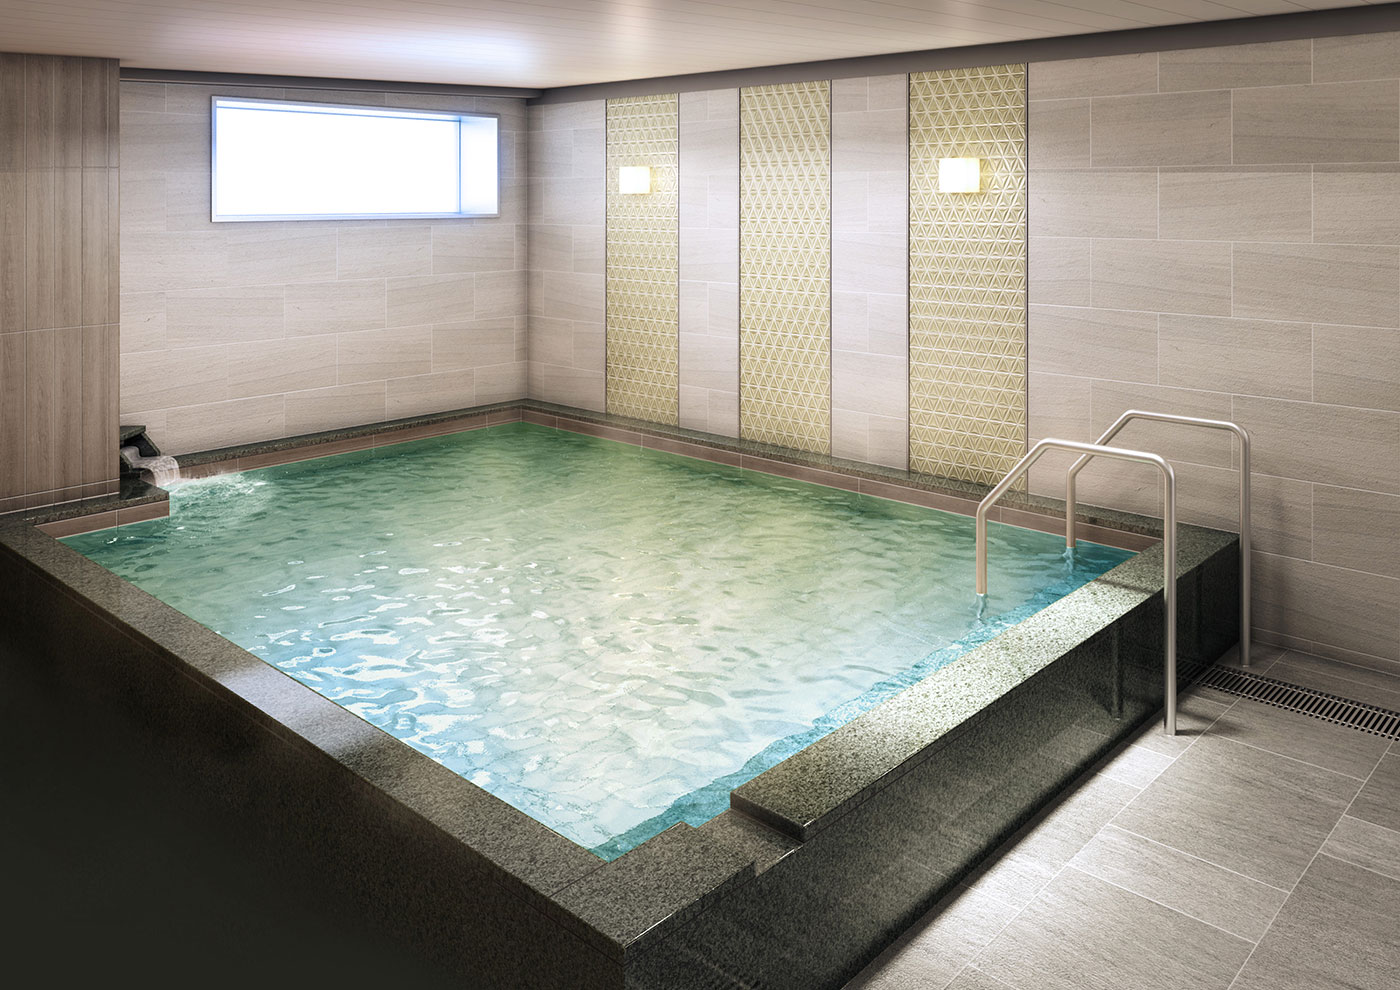 Large communal bath for relaxation (4th floor)